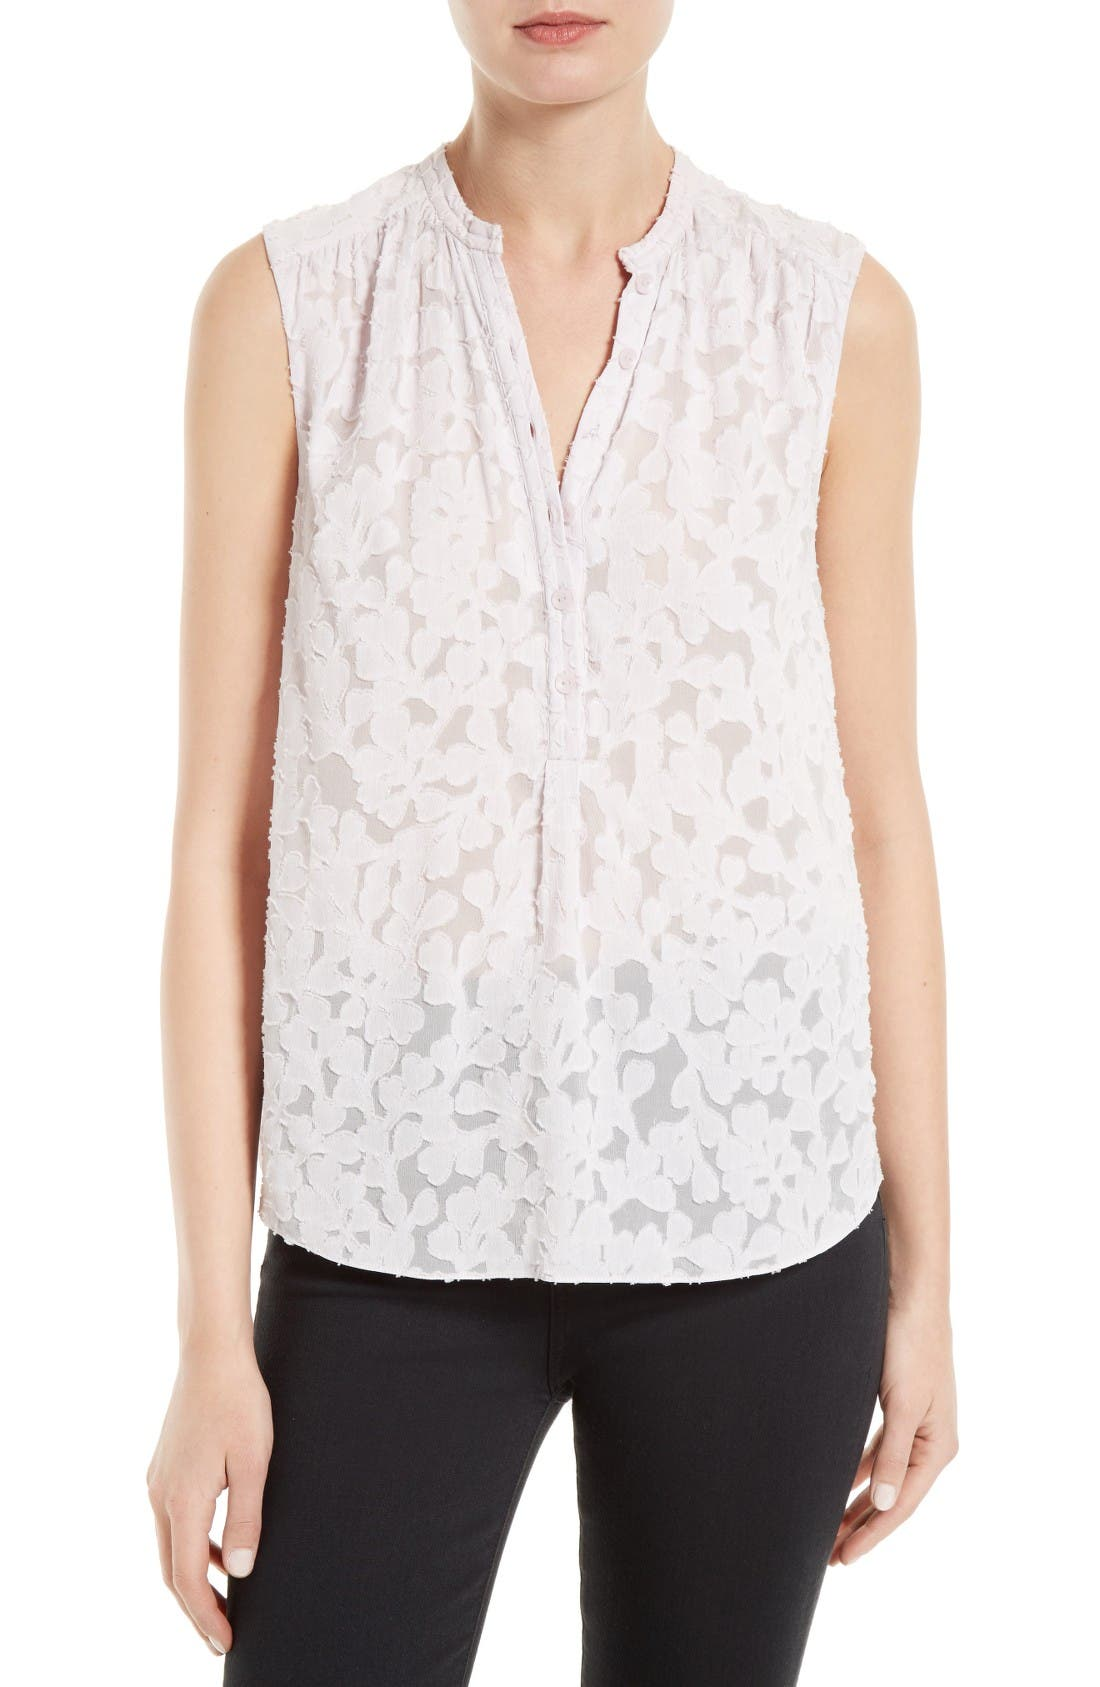 Alternate Image 1 Selected - Rebecca Taylor Ivy Vine Clipped Jacquard Top